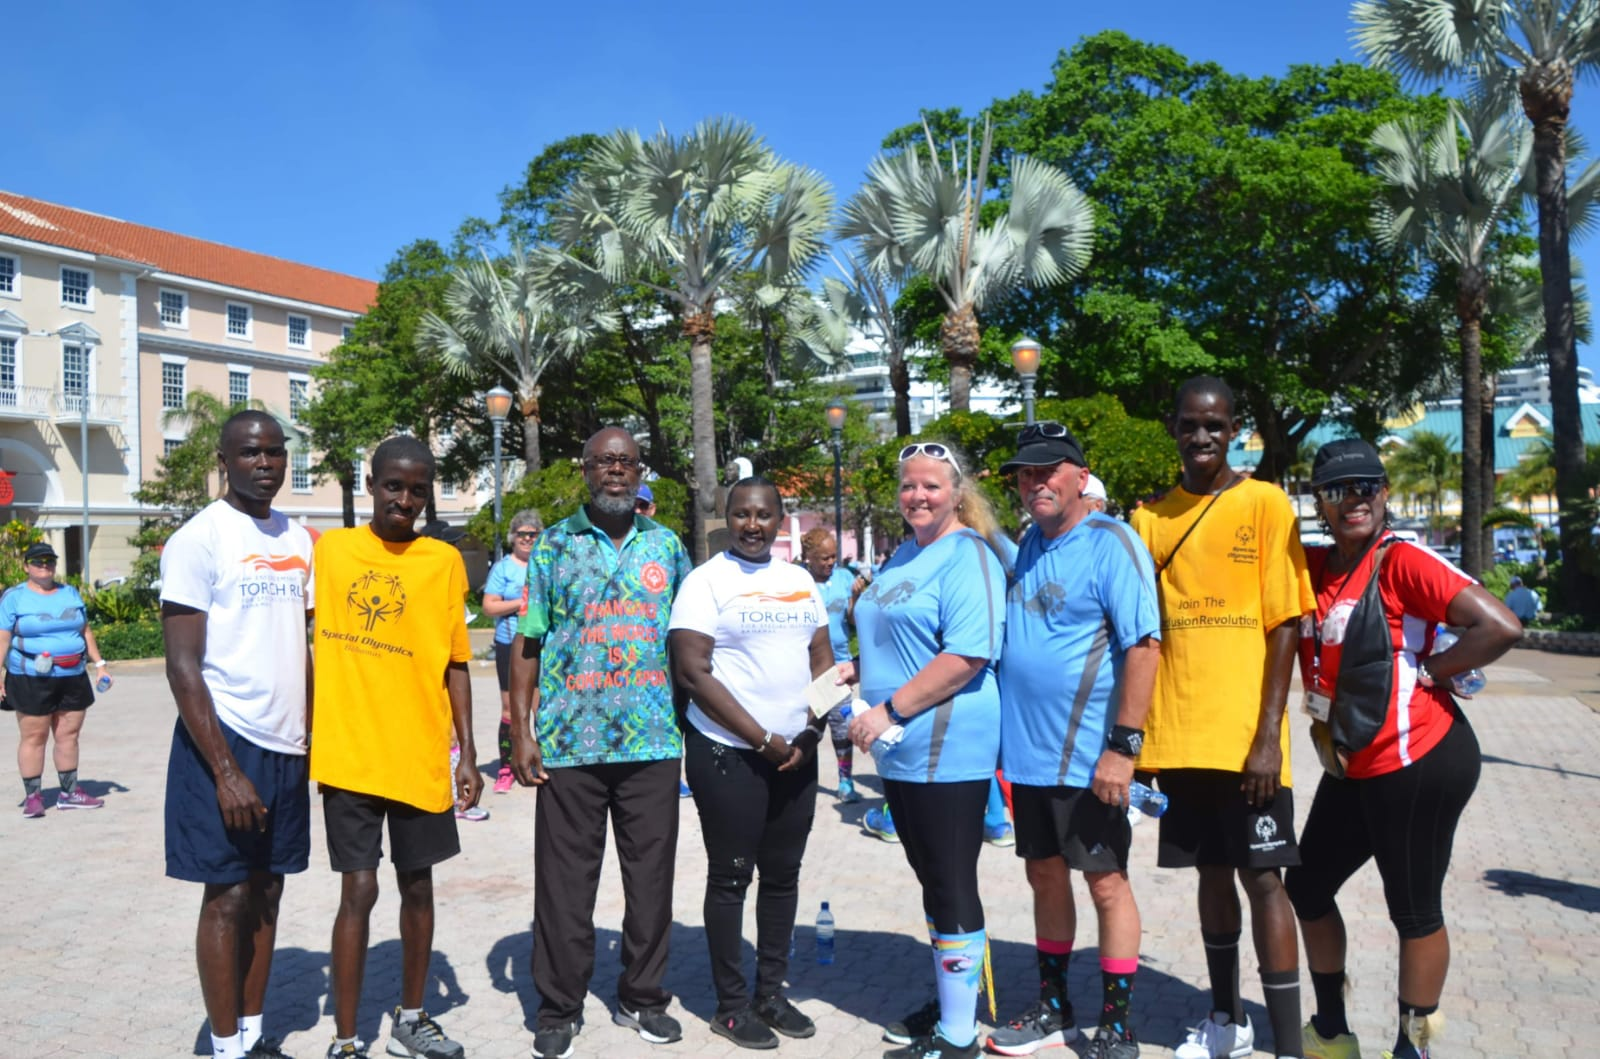 Williams has high hopes for Special Olympics Bahamas in Abu Dhabi